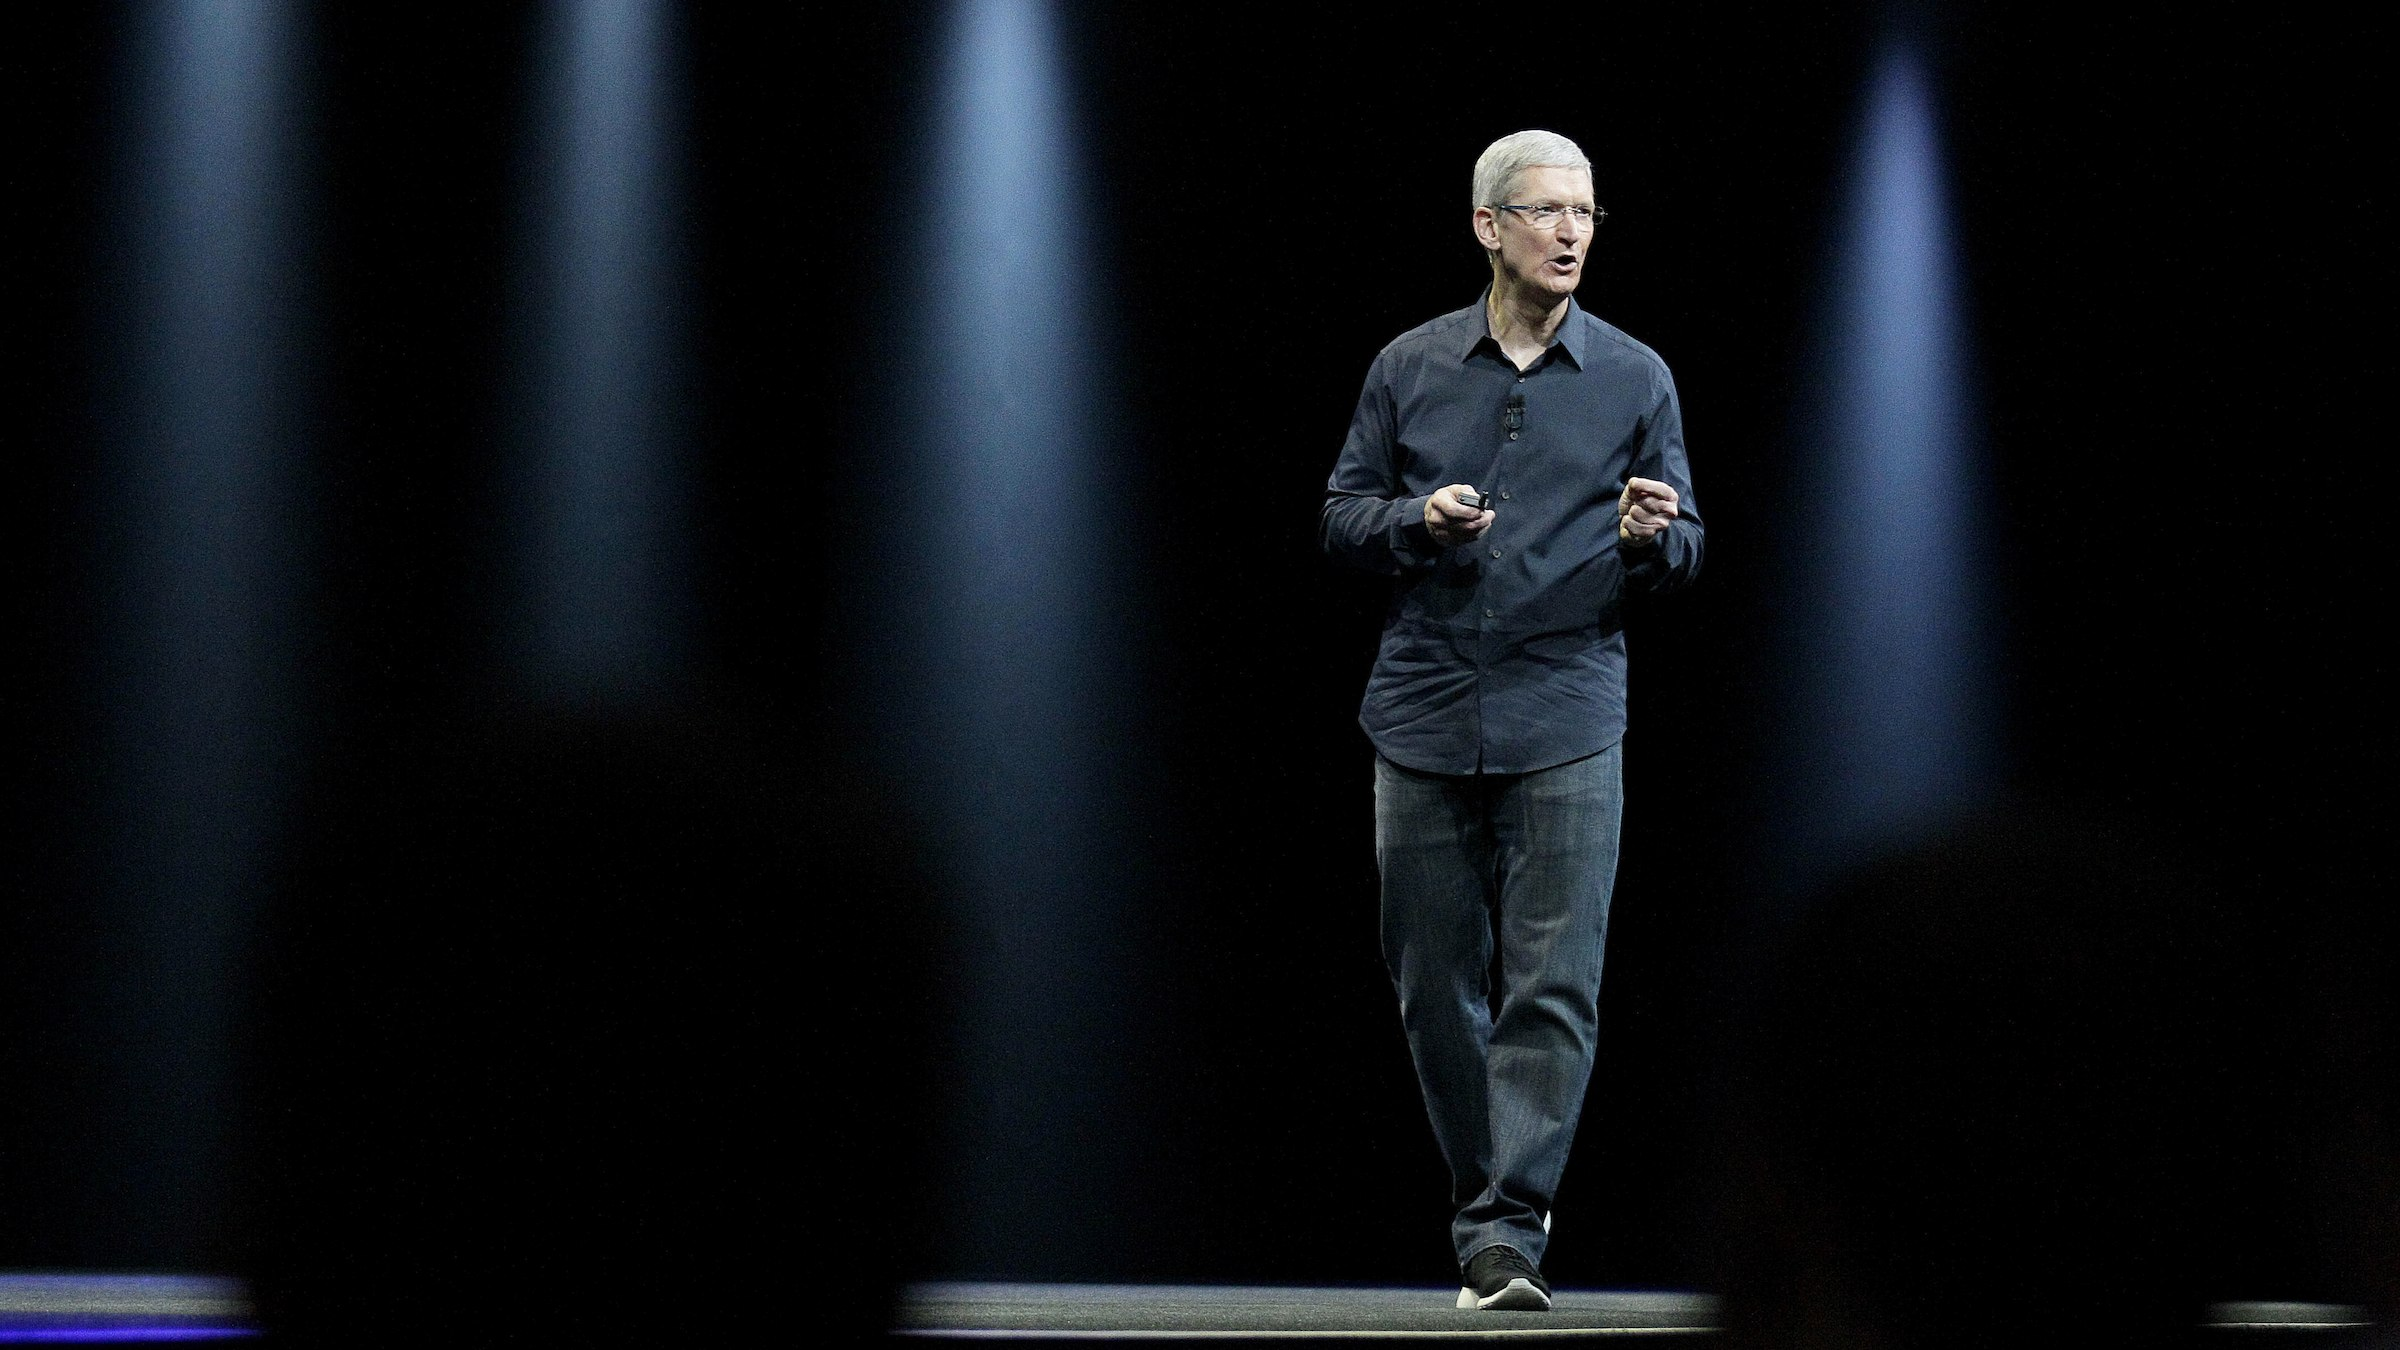 Apple CEO Tim Cook WWDC 2014